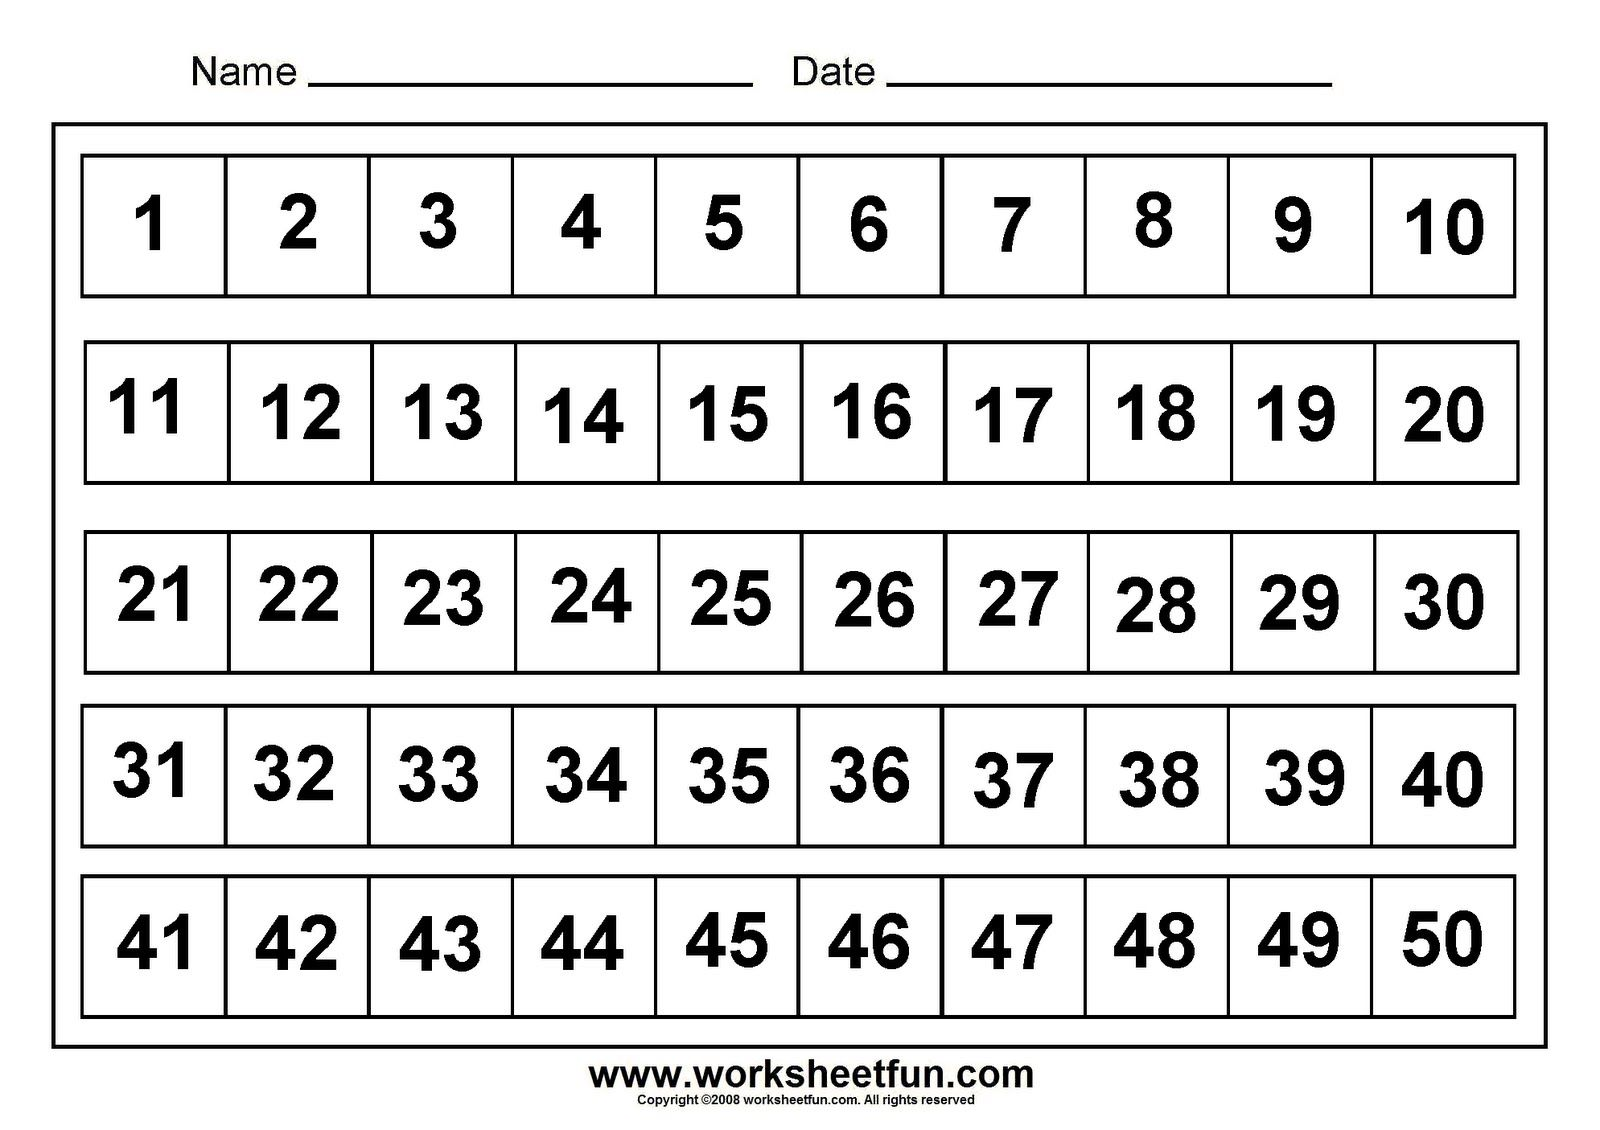 50 chart | Number Chart - (1-50) - Numbers 1-50 | Stuff to Buy ...